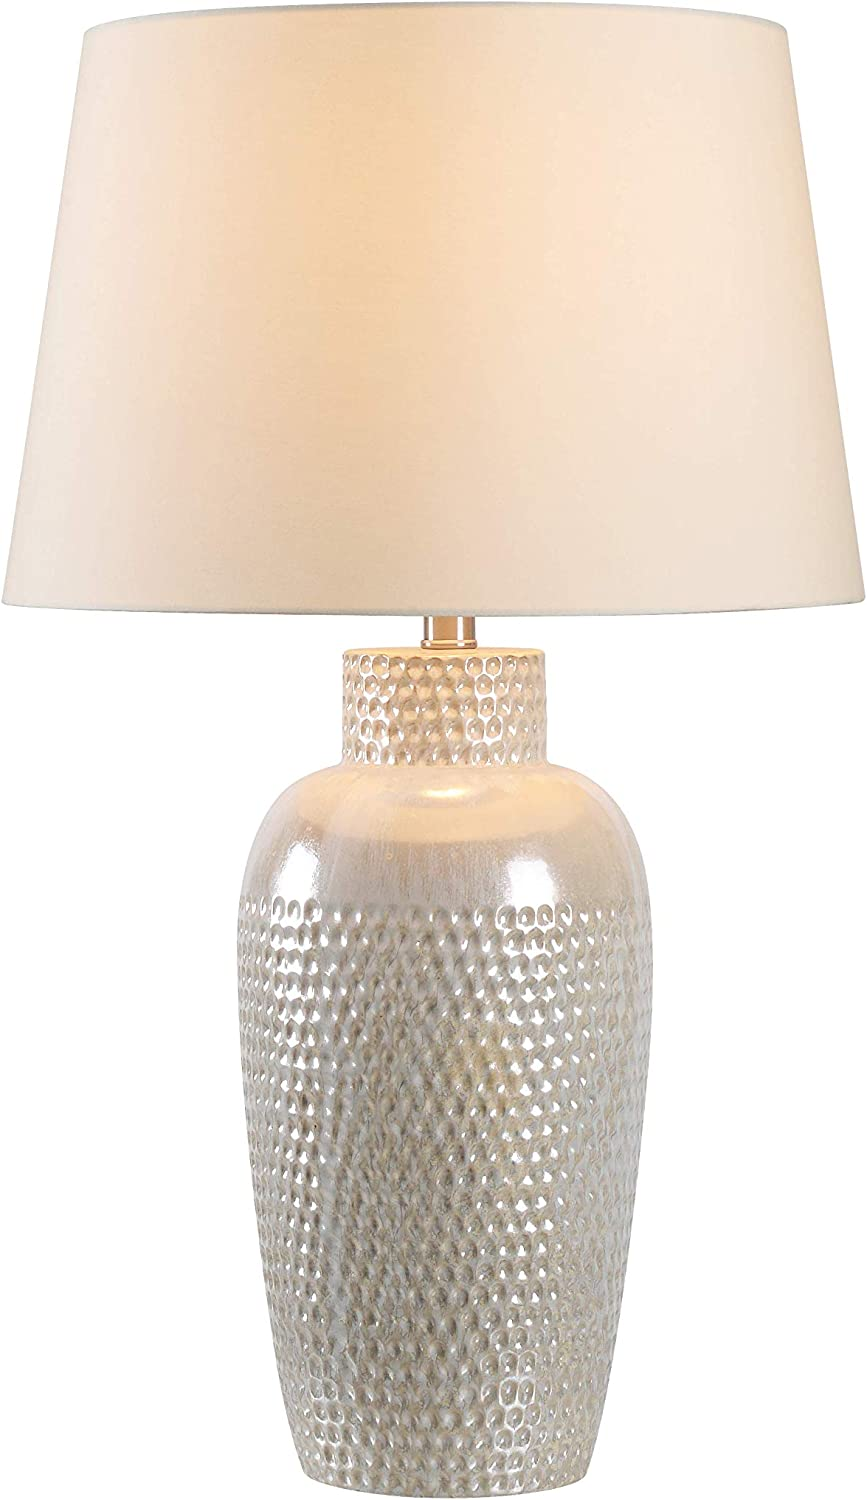 Kenroy Home 32107ird Facade Table Lamps 28 Inch Height Iridescent Ceramic Table Lamps Ceramic